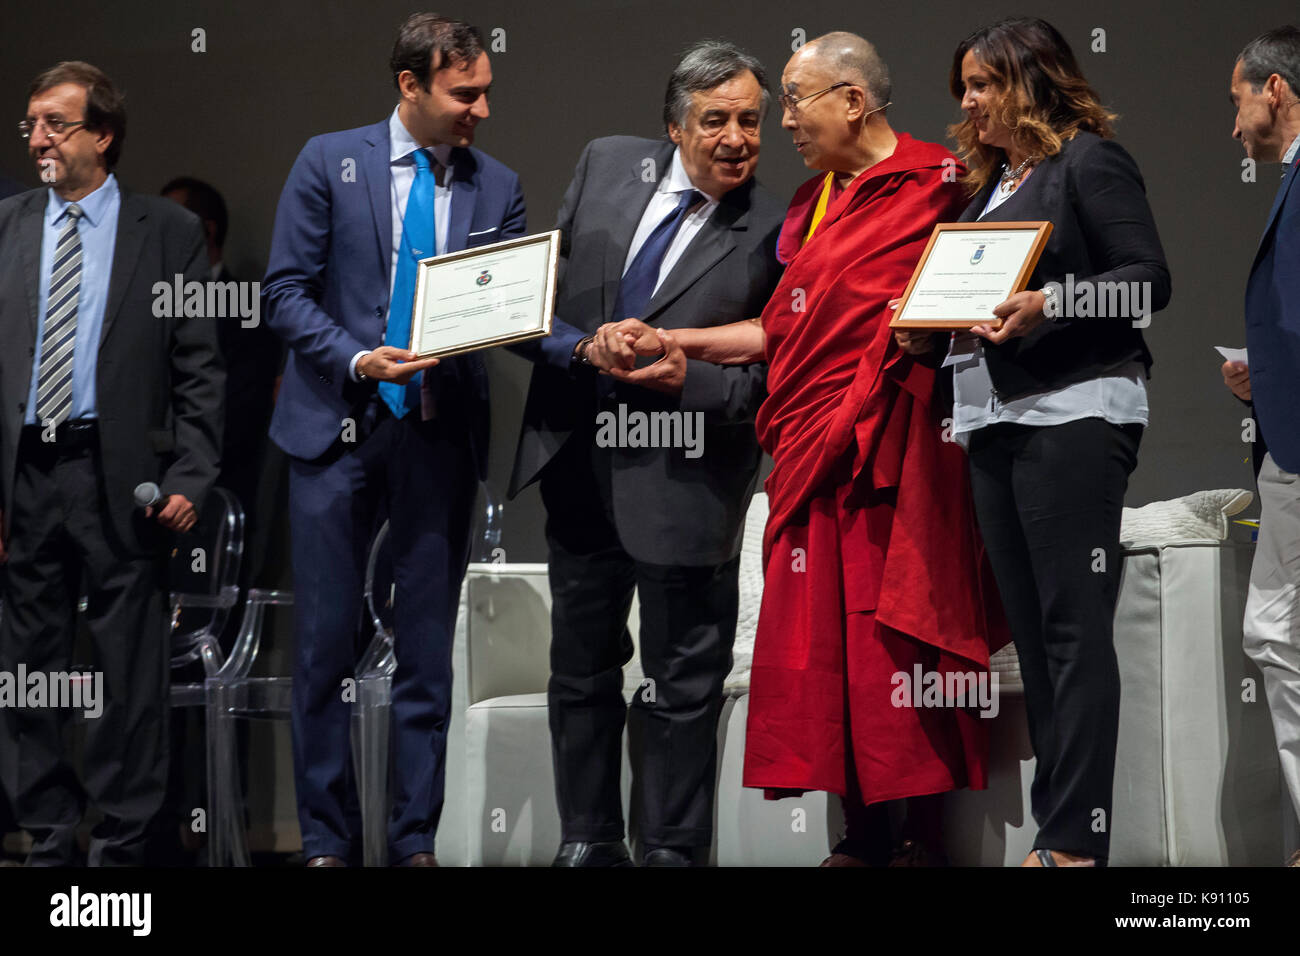 The XIV Dalai Lama takes to the stage to address the faithful in Palermo on September 18, 2017. Stock Photo